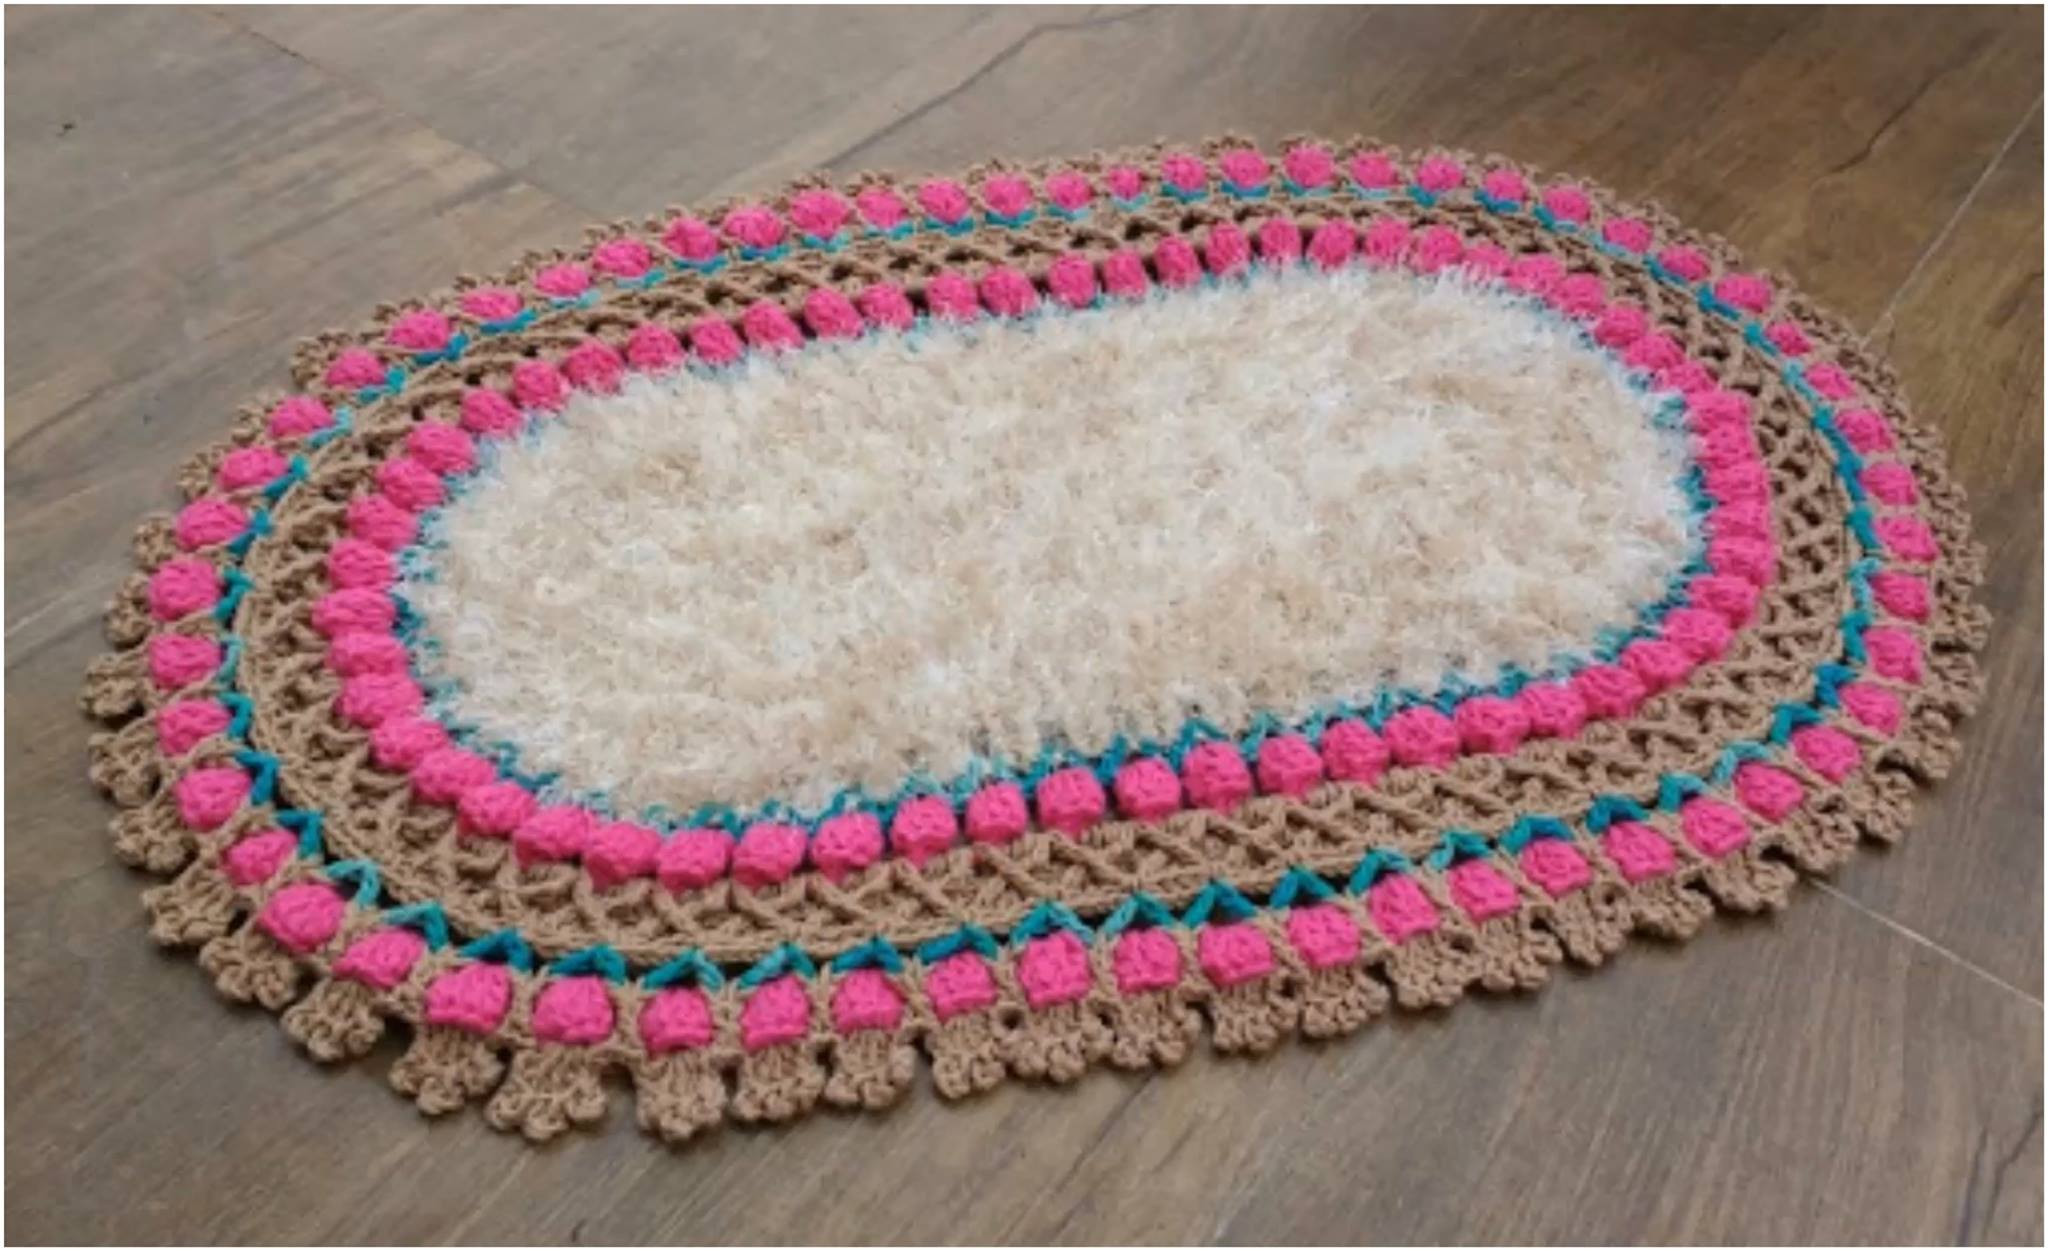 Crochet Oval Rug Luxury Crochet Archives Page 3 Of 8 Yarnandhooks Of Charming 49 Images Crochet Oval Rug